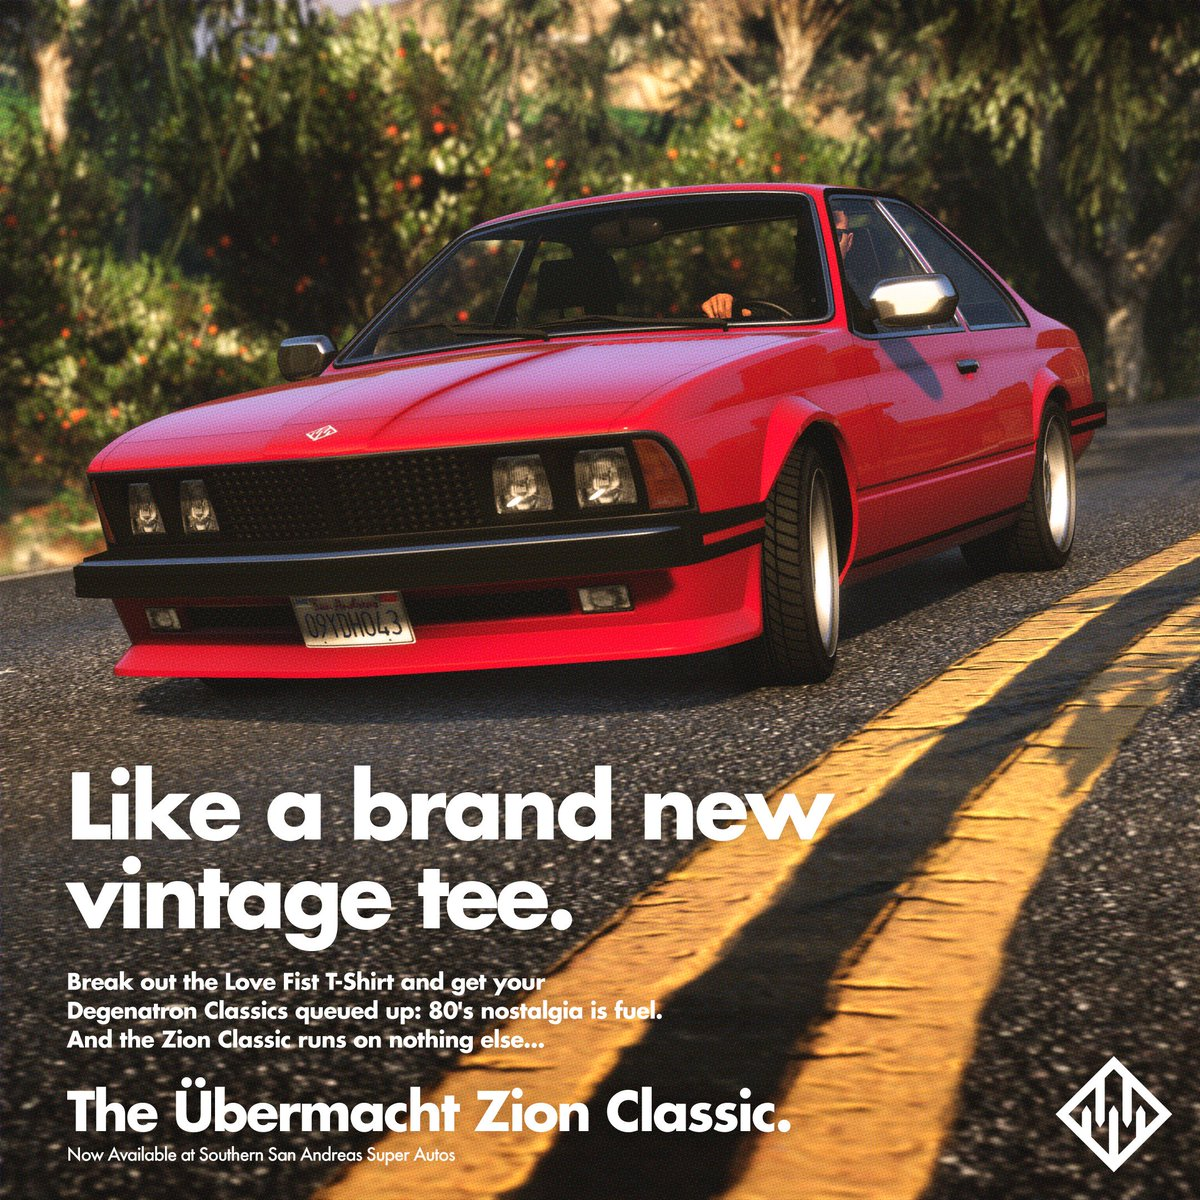 80's nostalgia is one hell of a fuel, and the Zion Classic from Übermacht runs on nothing else.Pick up the Übermacht Zion Classic today at Southern San Andreas Super Autos in GTA Online.http://rsg.ms/b213fa2